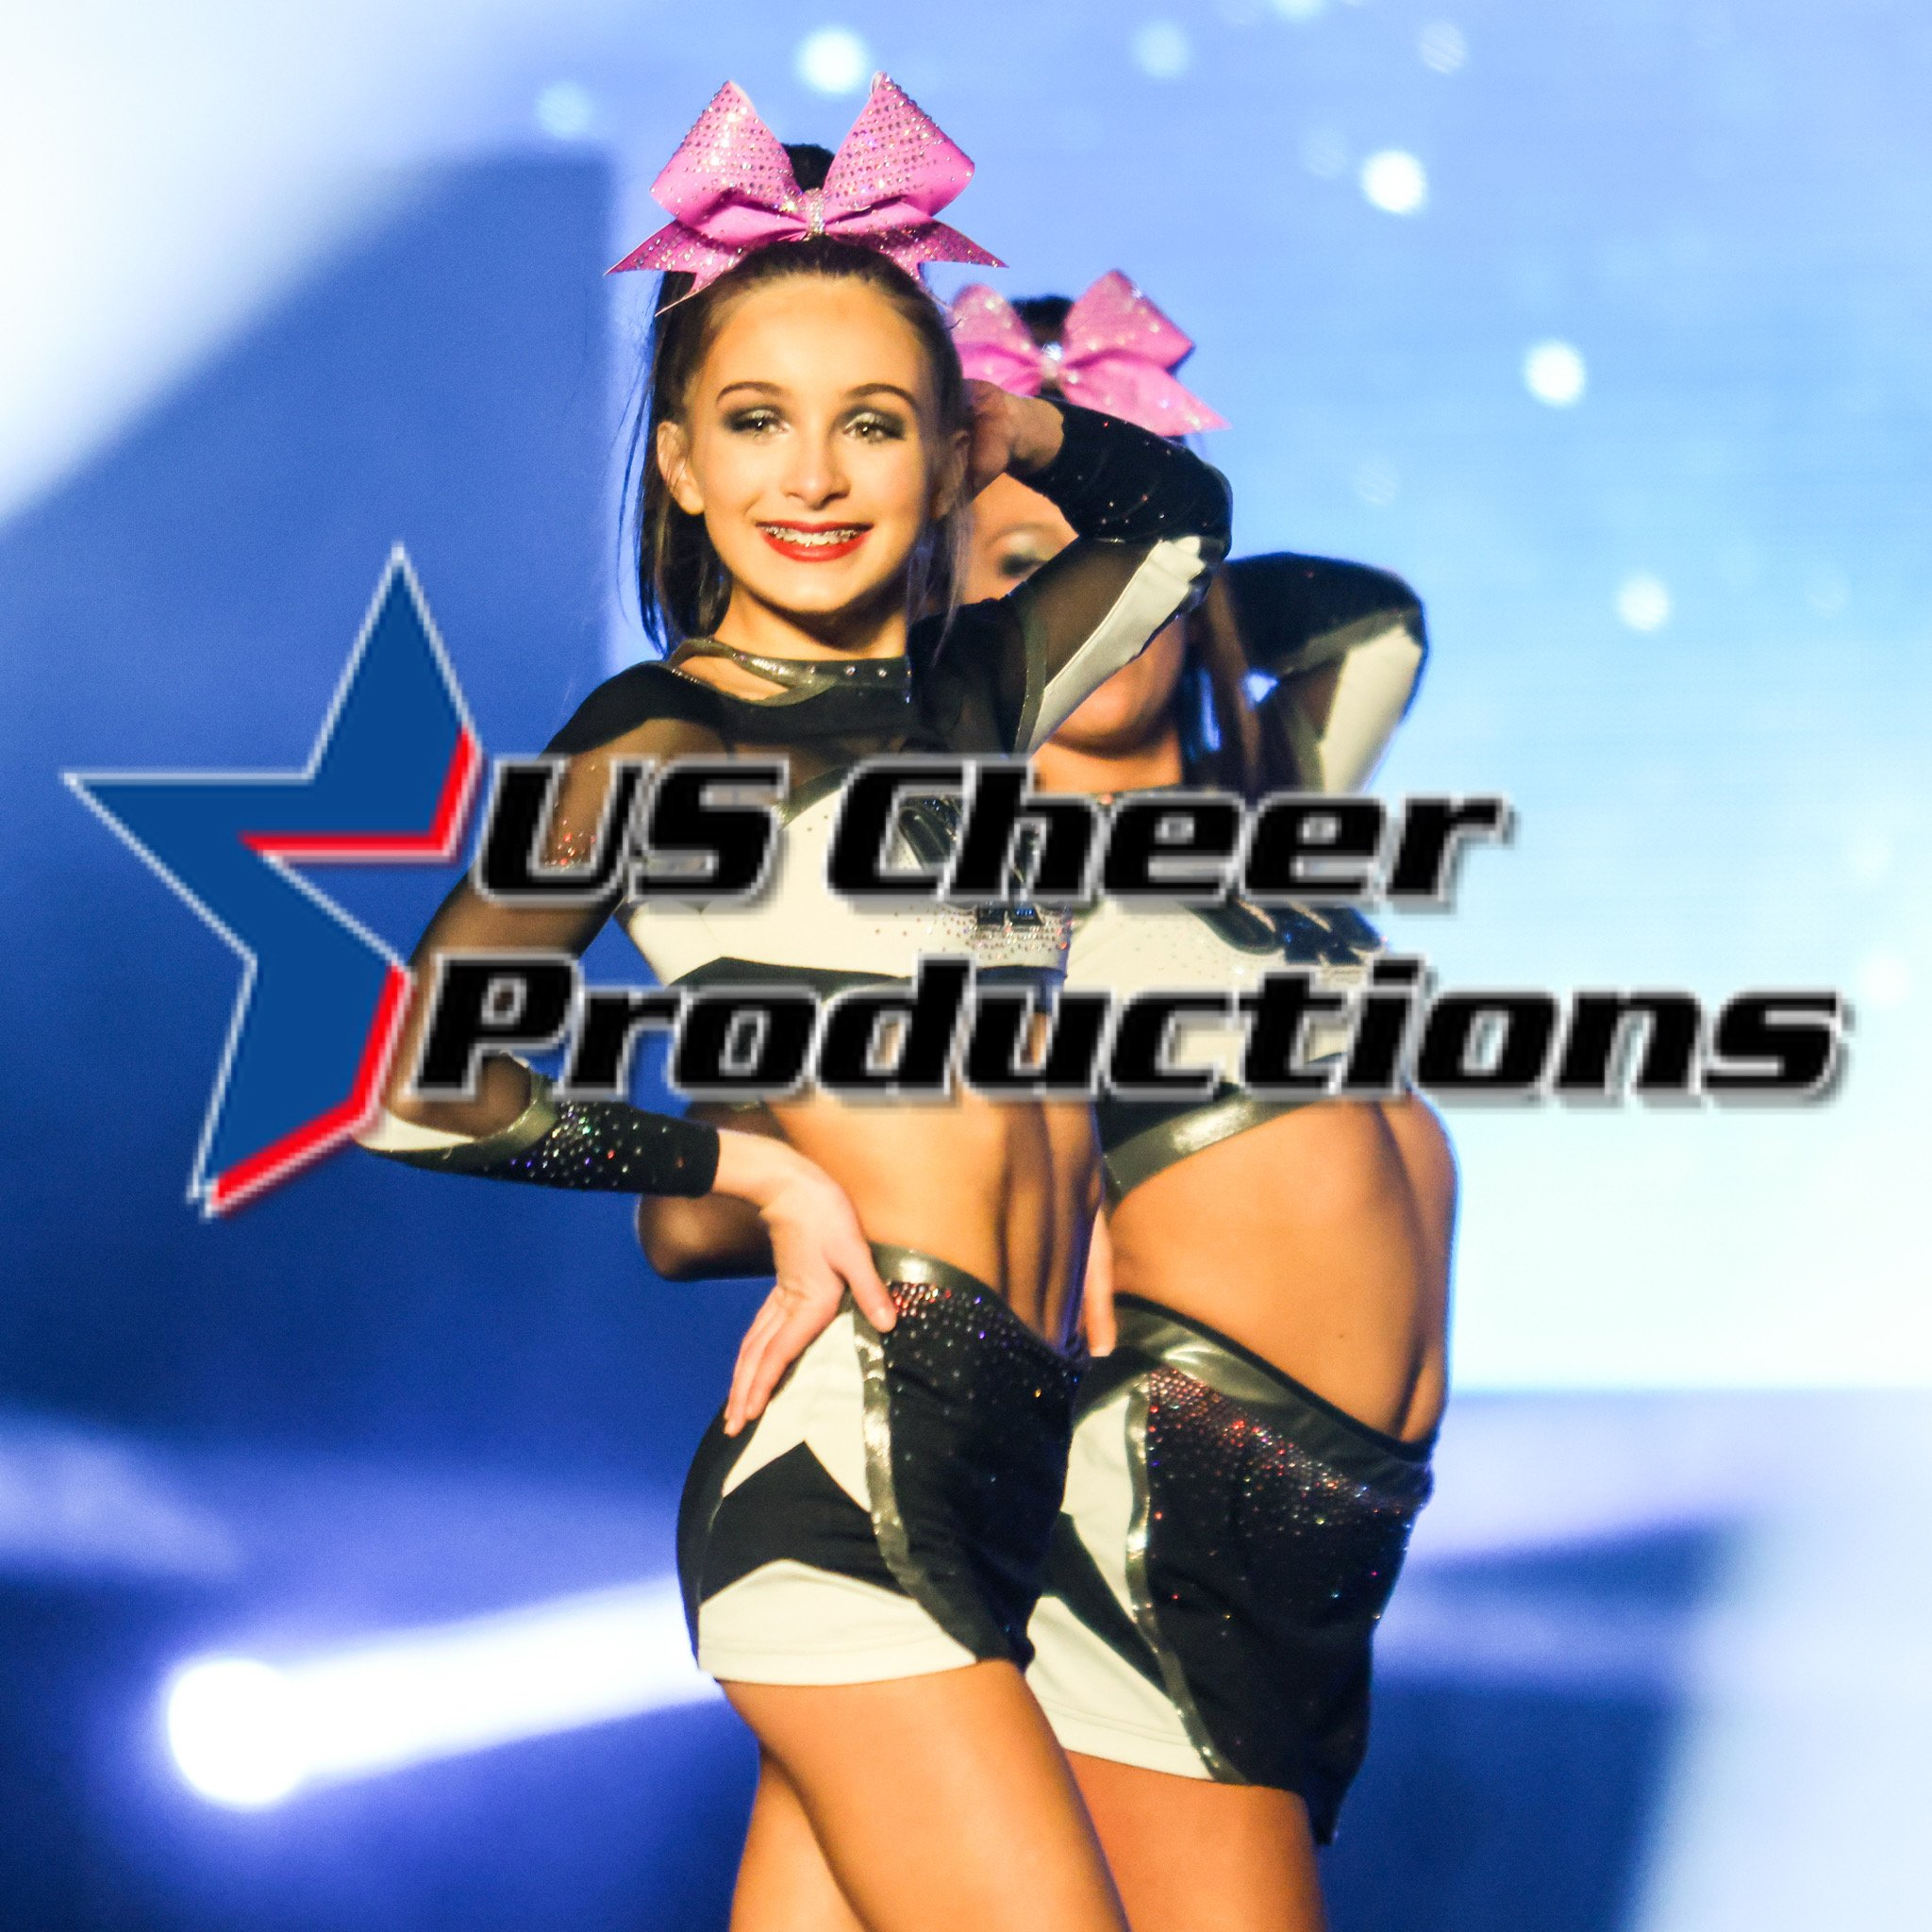 US Cheer Productions